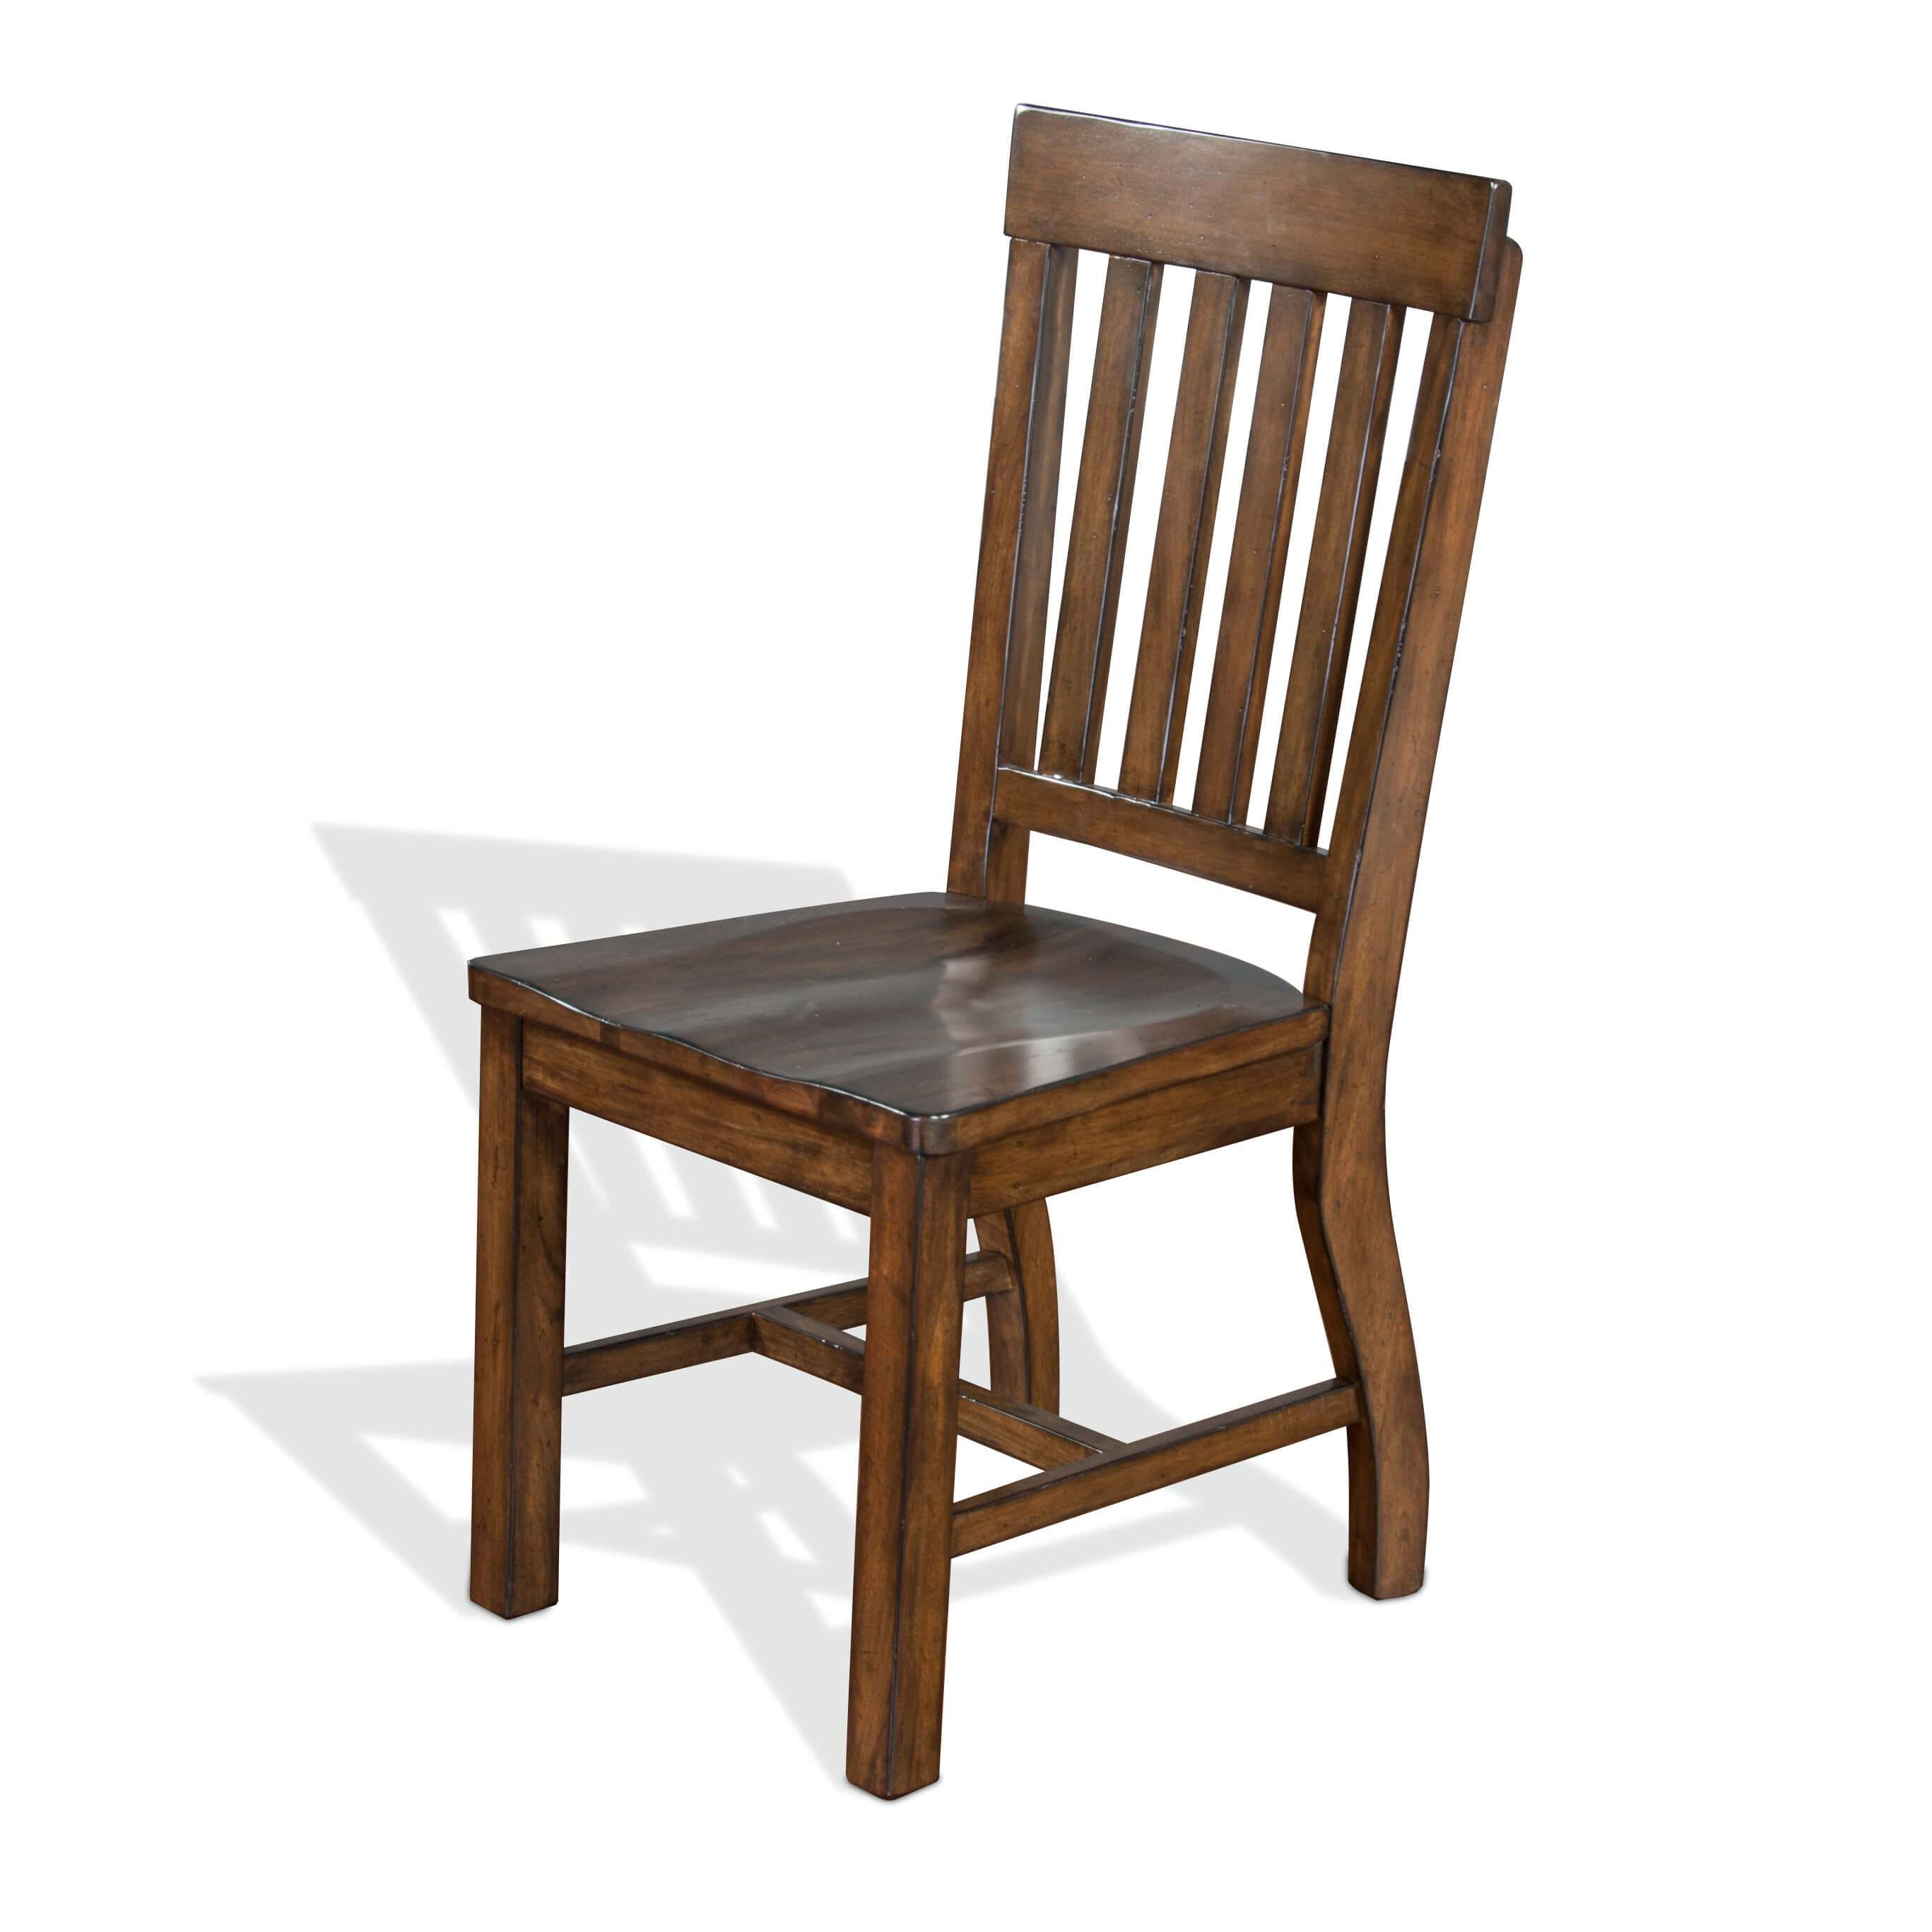 Asheville Rustic Wood Dining Chair